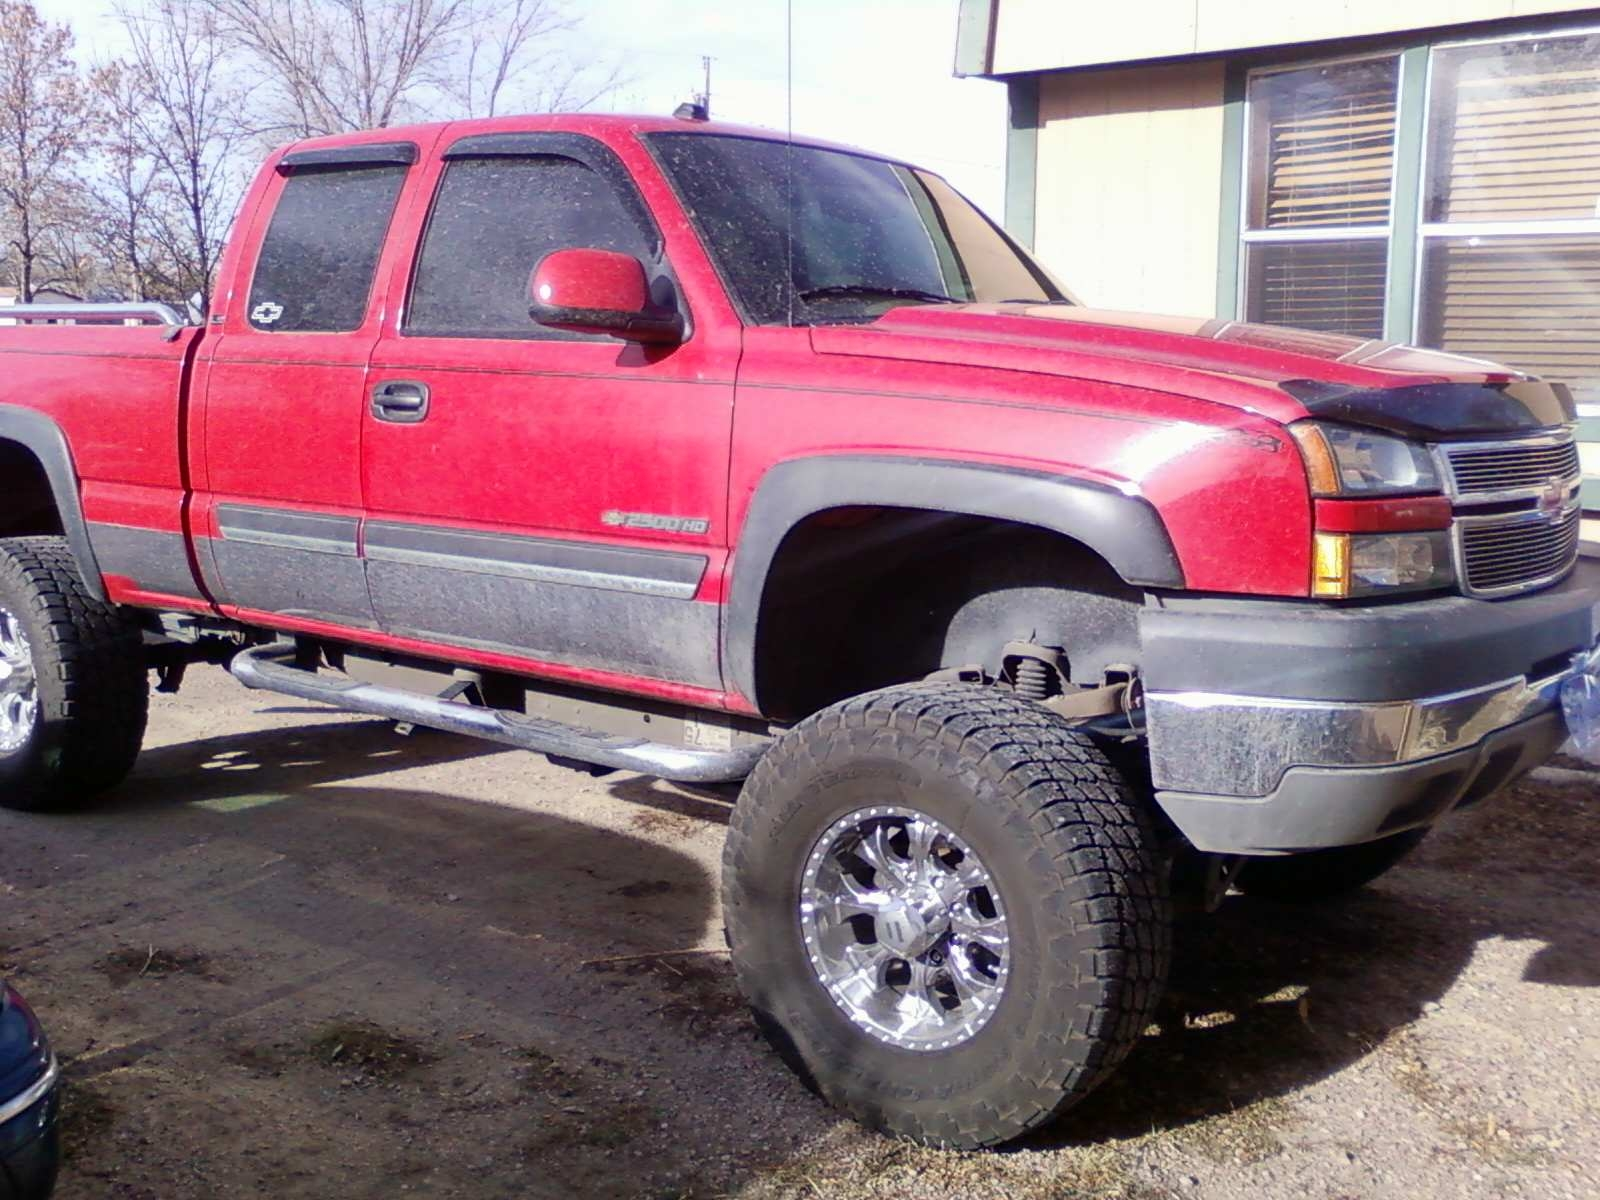 mcallister2500hd 2005 chevrolet silverado 2500 hd extended cab specs photos modification info. Black Bedroom Furniture Sets. Home Design Ideas